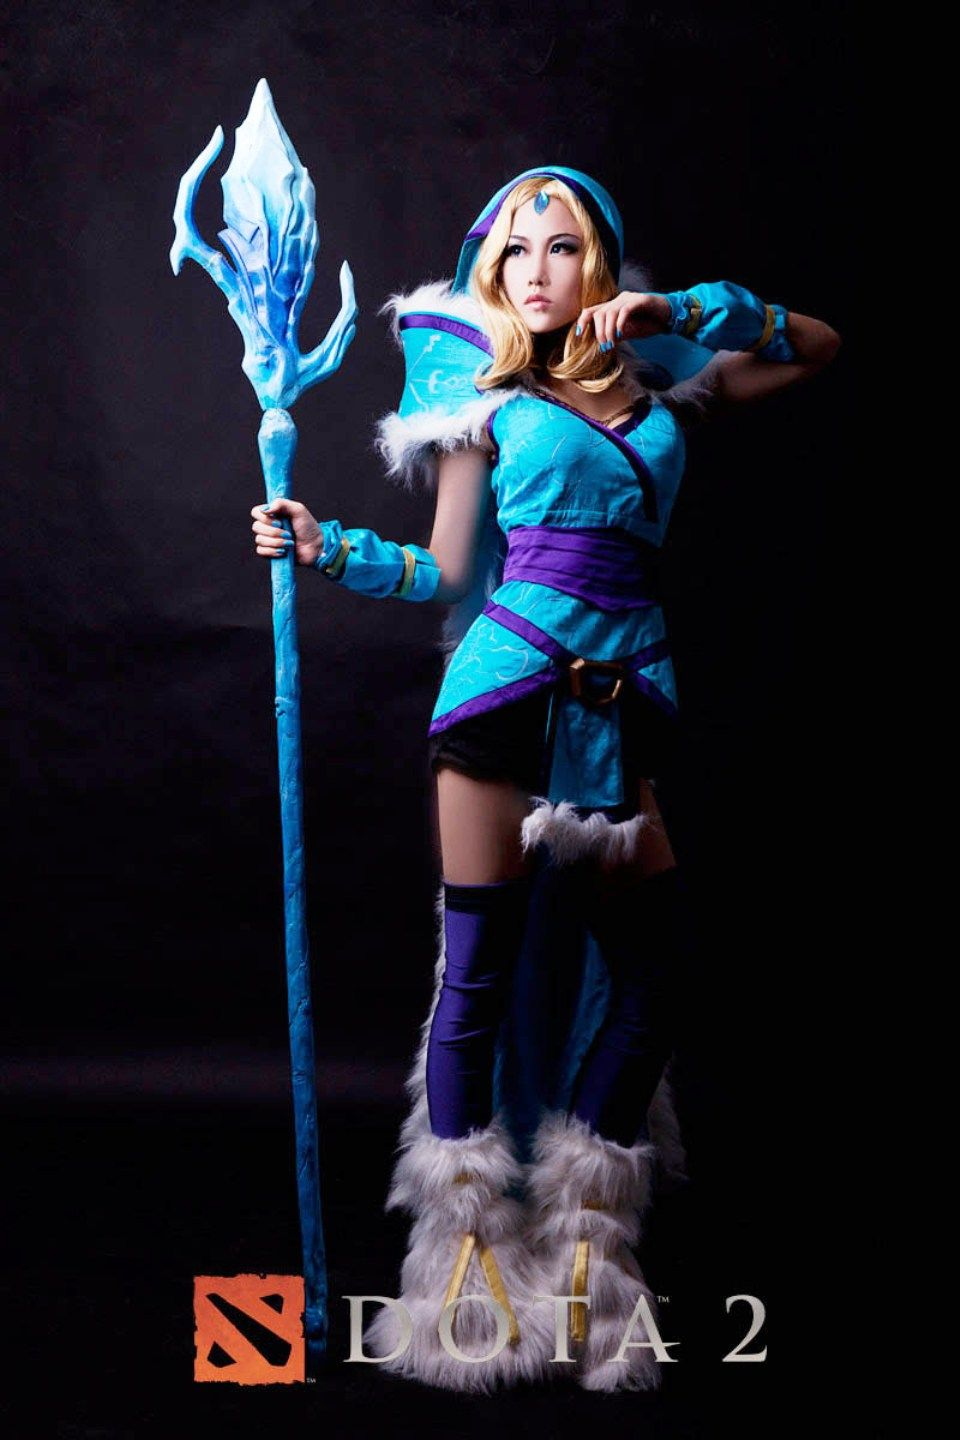 Download Free Dota 2 Crystal Maiden Wallpaper With High Definition